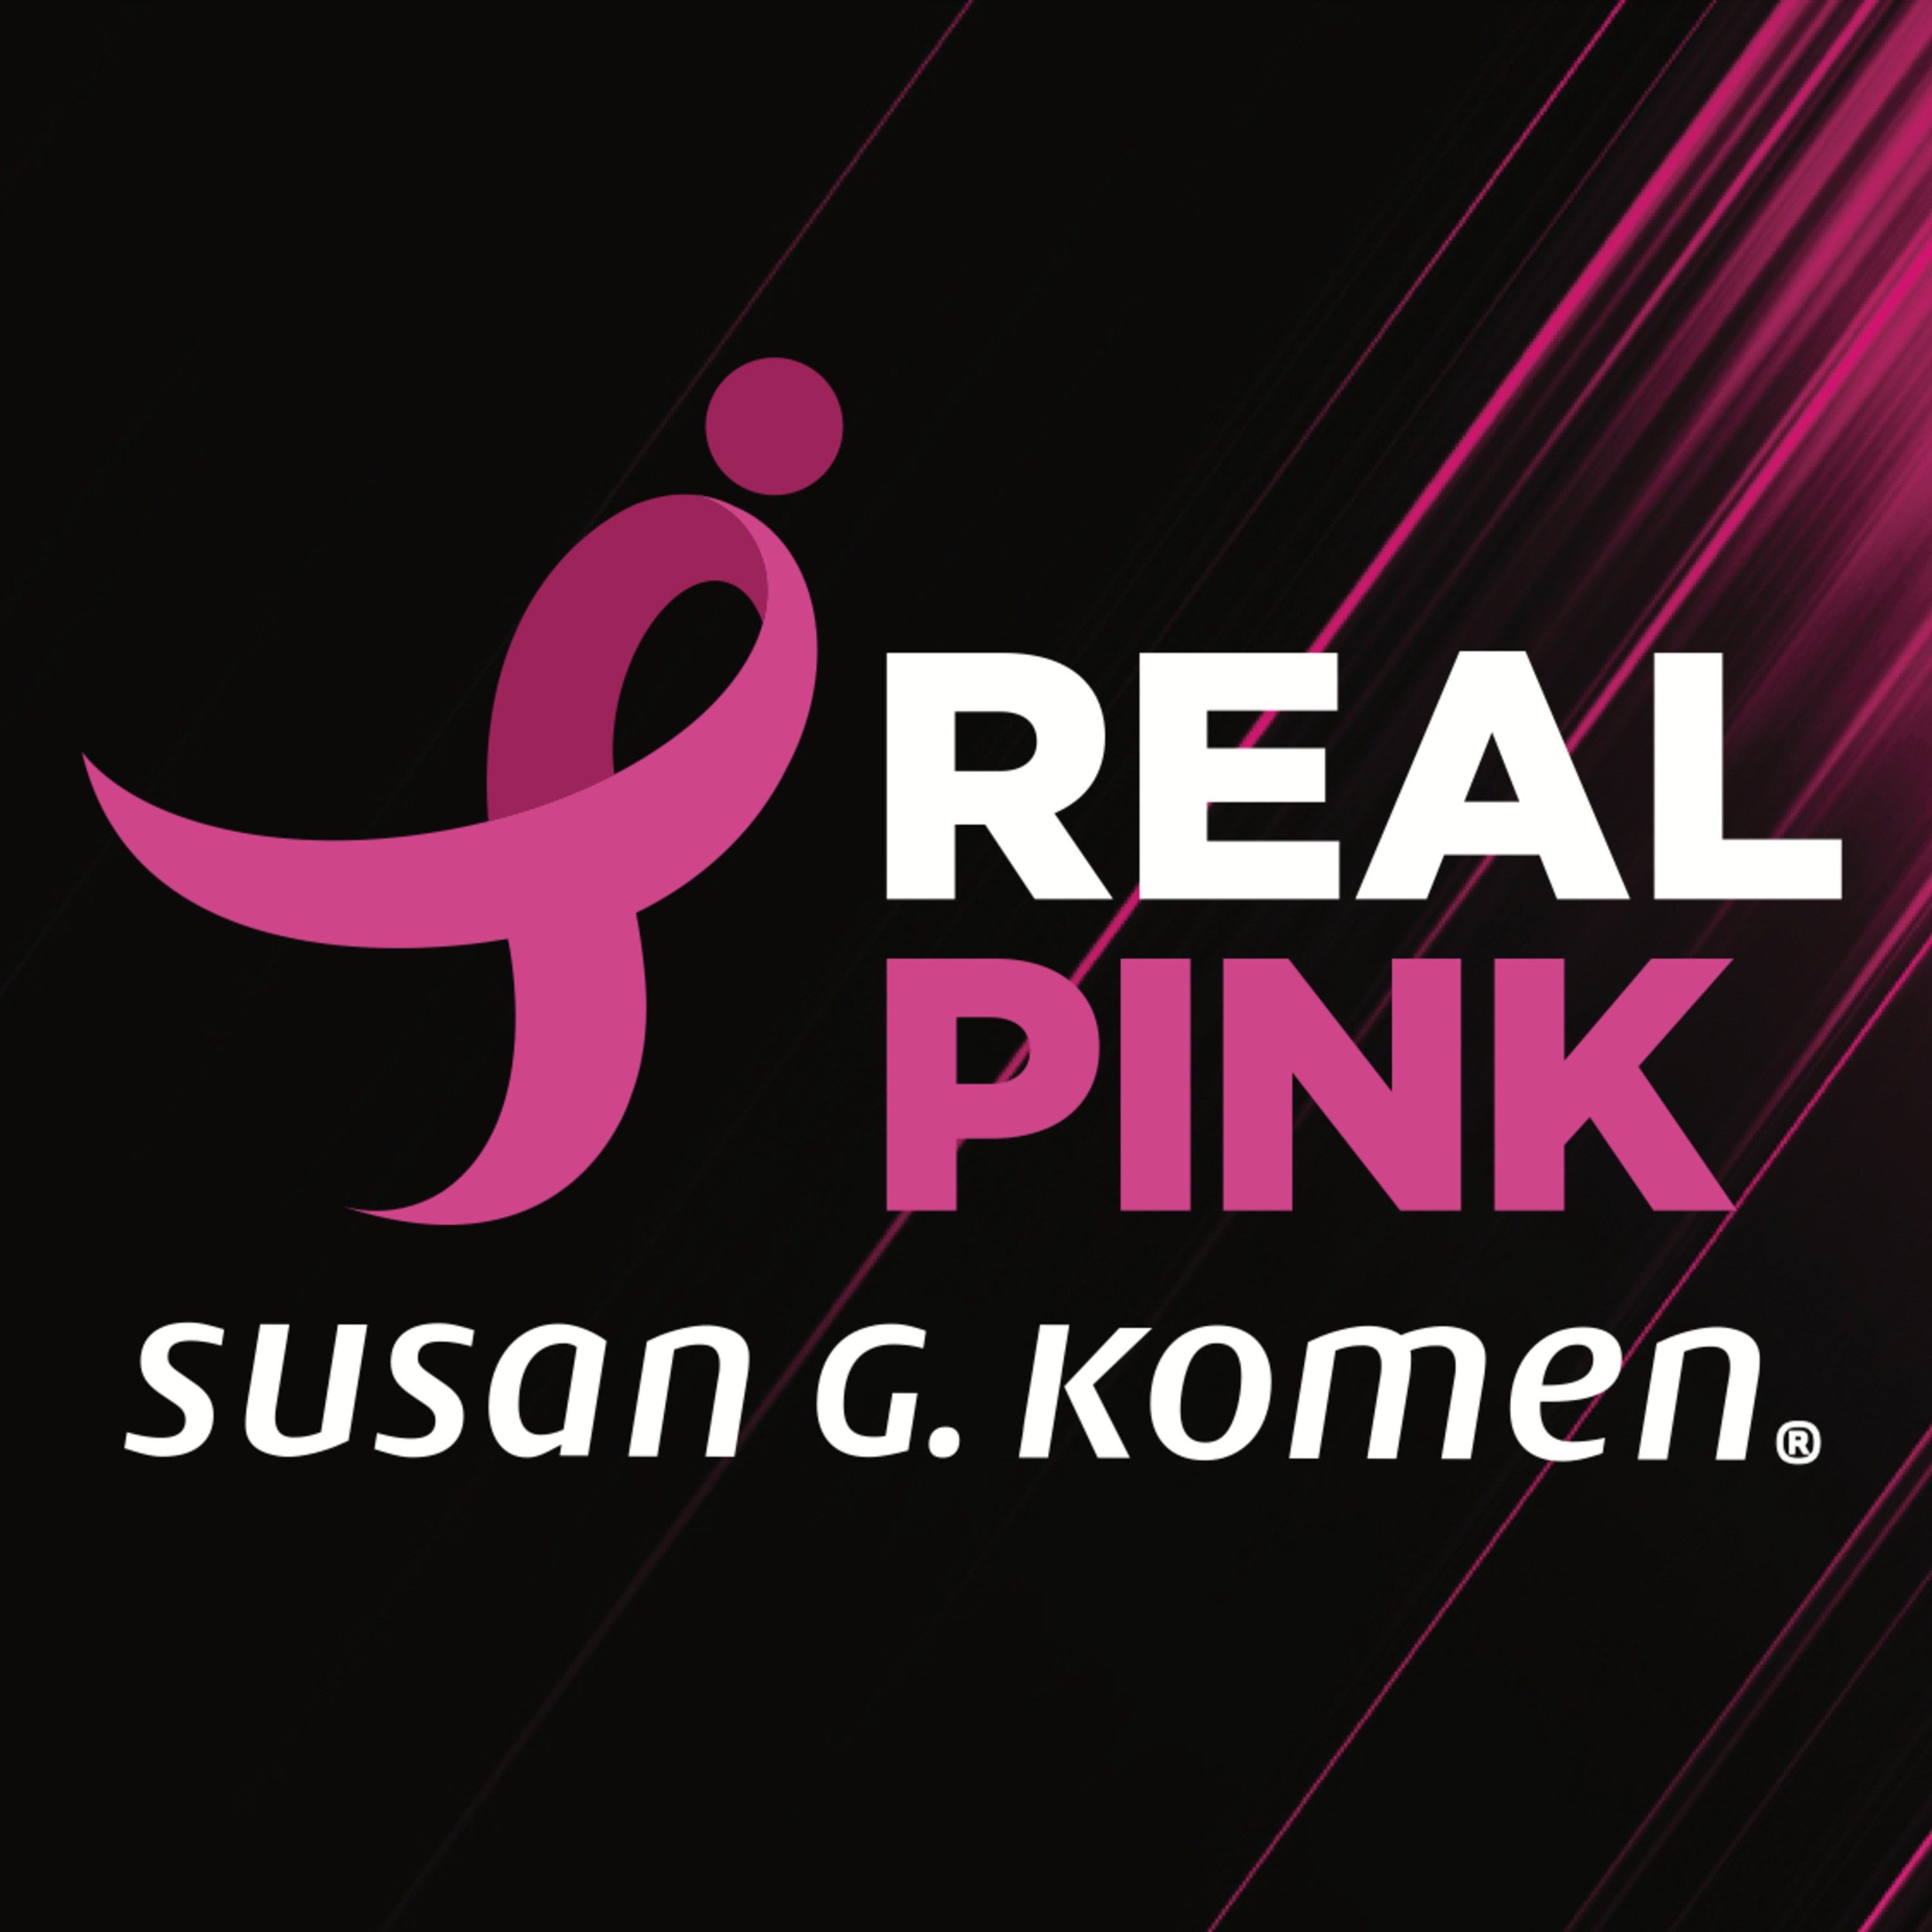 Coming Soon... Real Pink by Susan G. Komen